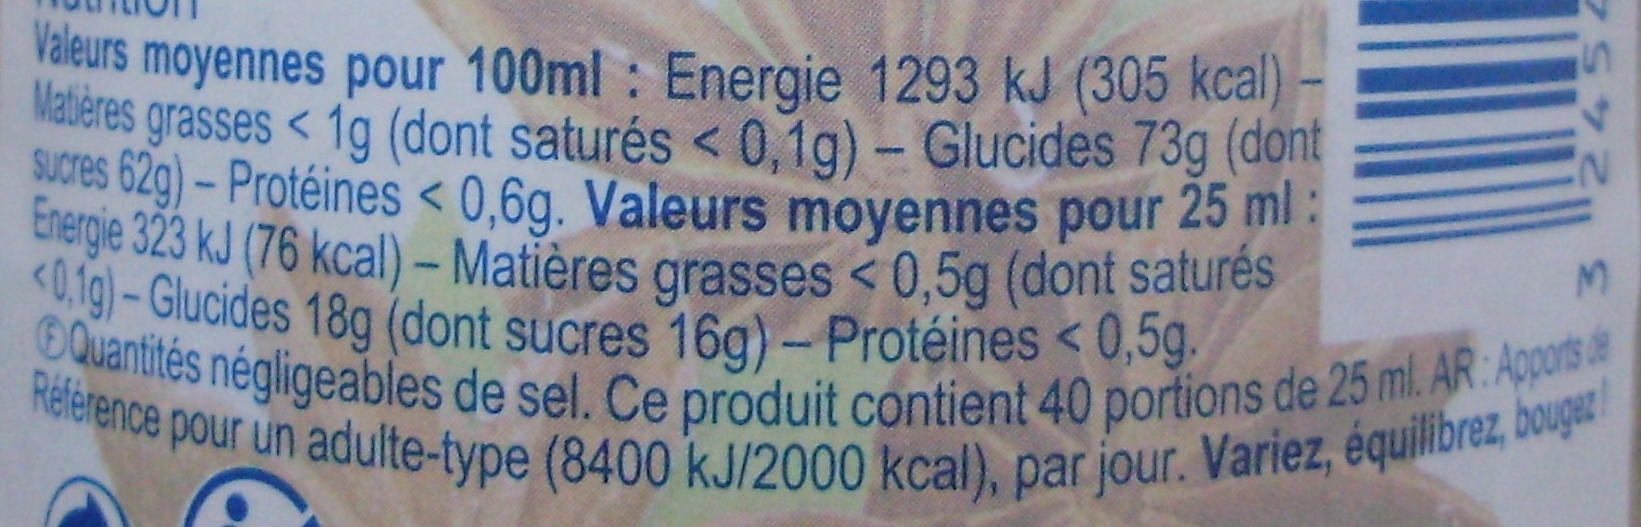 Sirop ANIS - Nutrition facts - fr